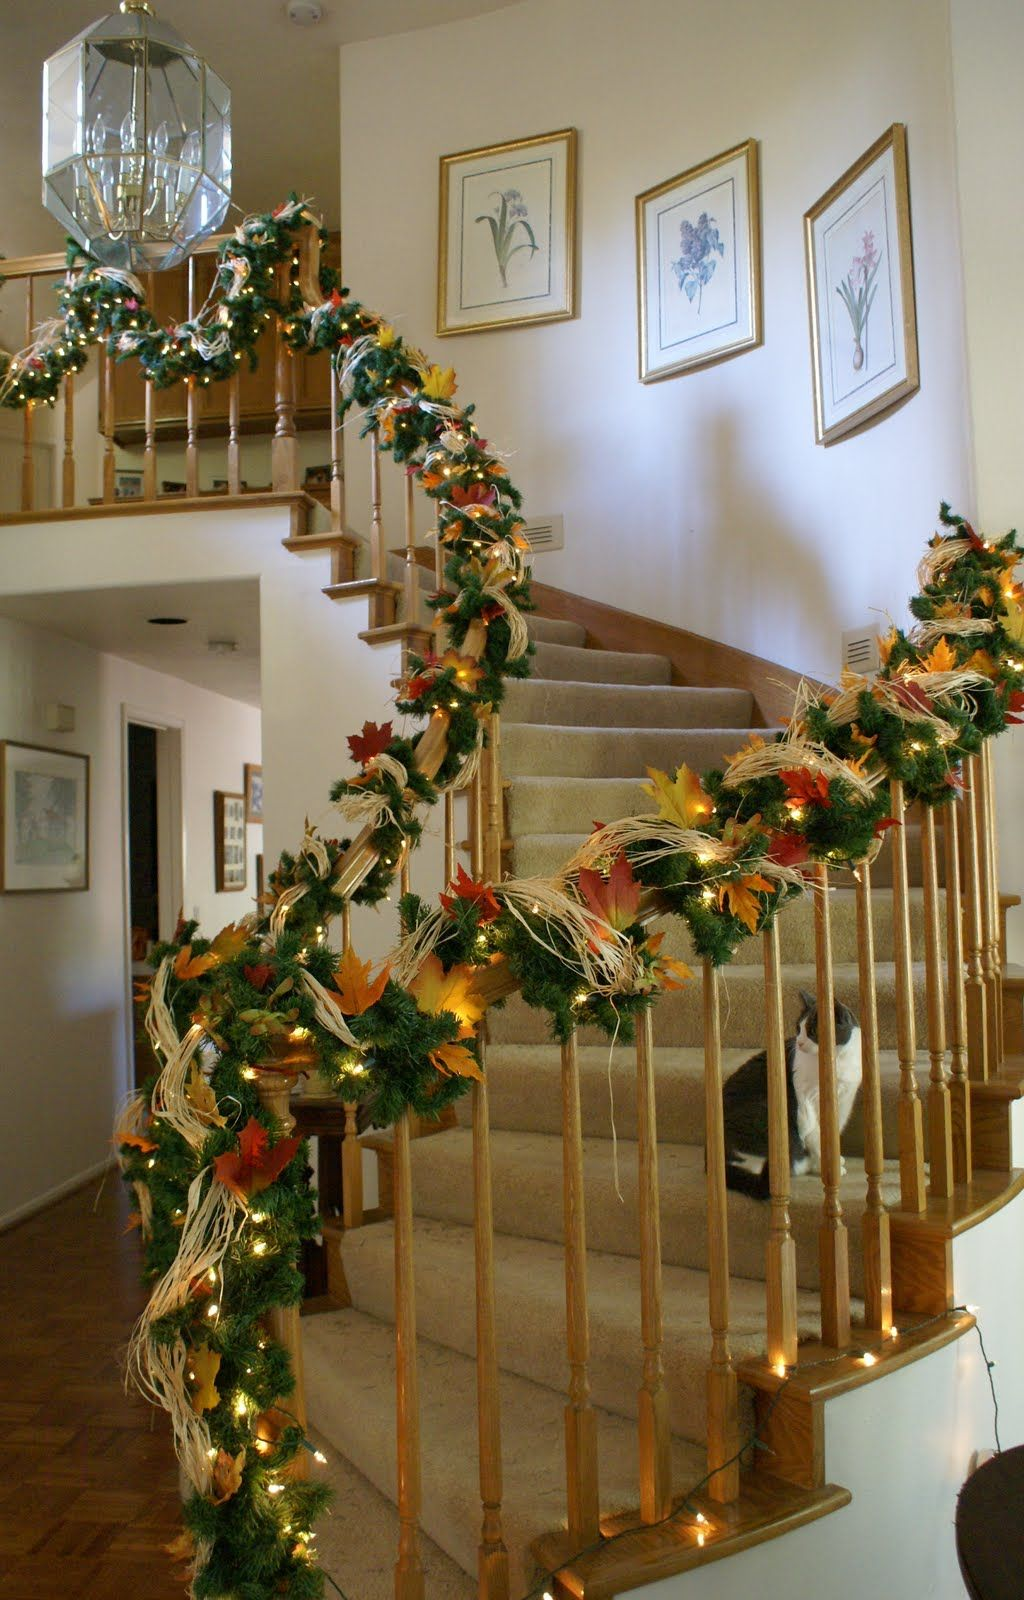 Wedding flowers on stairways wedding staircase decoration fall wedding flowers on stairways wedding staircase decoration fall junglespirit Image collections